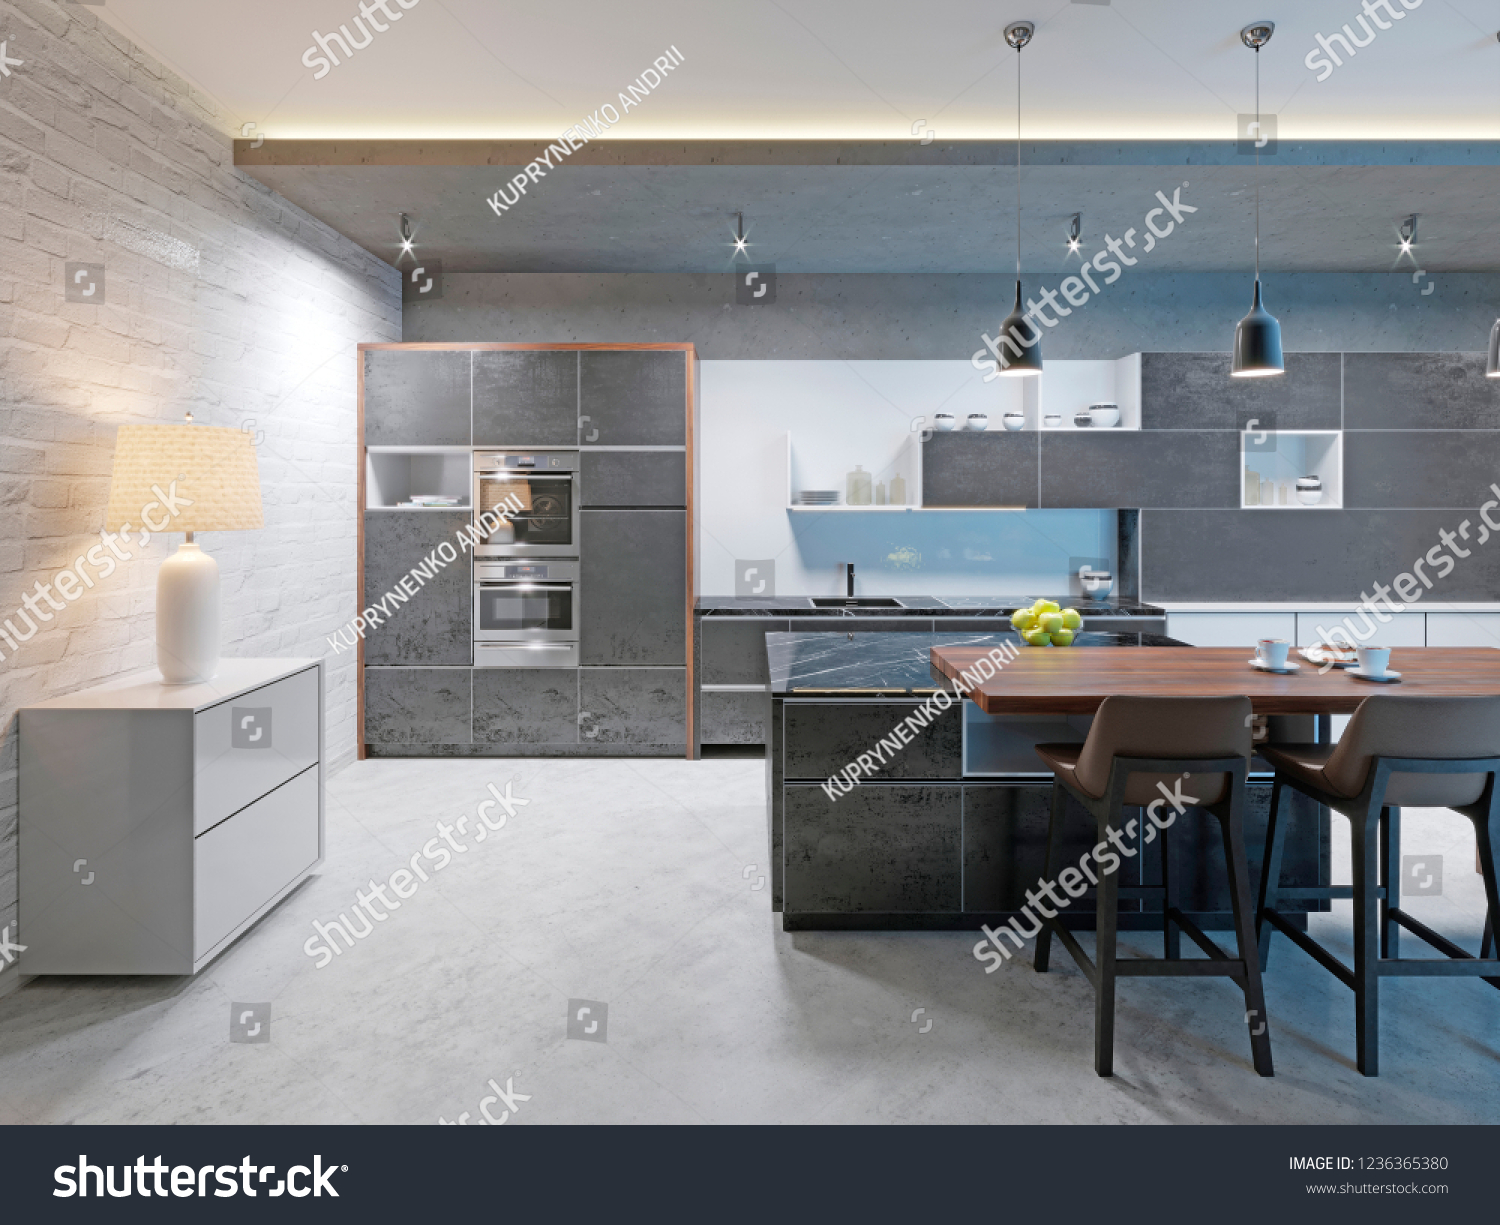 Long Kitchen Design Pictures Modern Kitchen Design Long Center Island Stock Illustration 1236365380